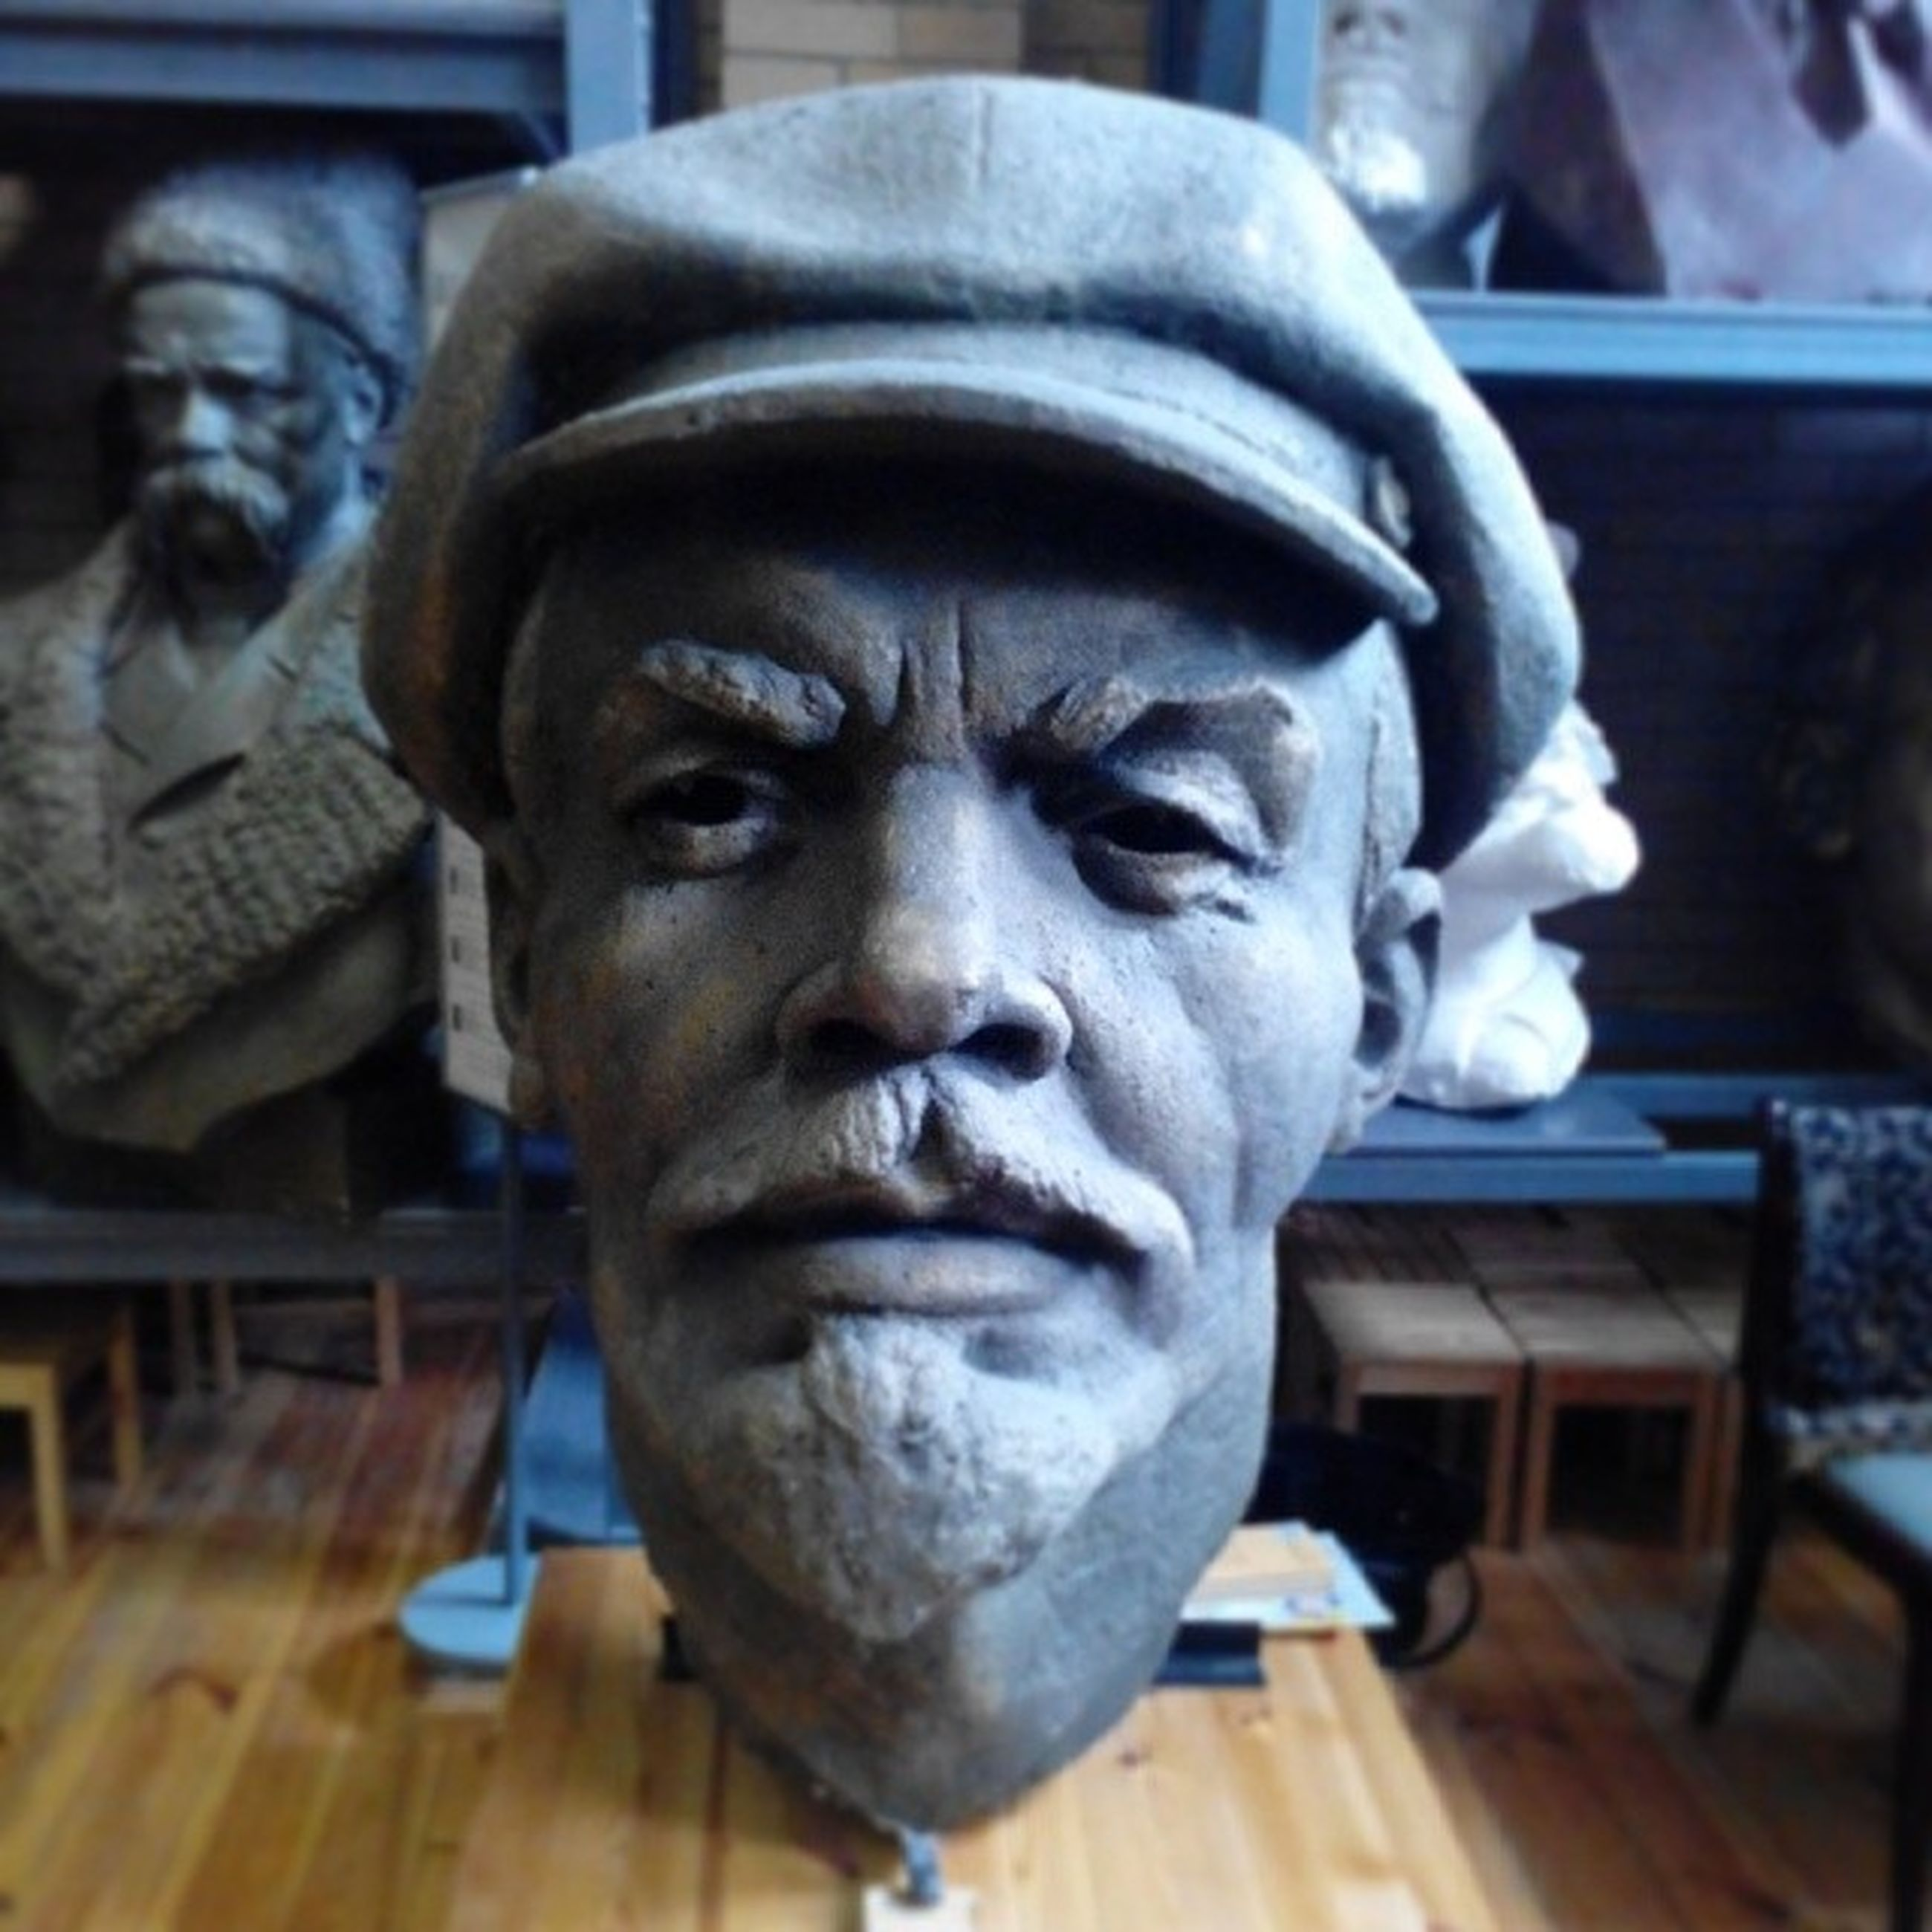 human representation, art and craft, statue, sculpture, art, creativity, close-up, focus on foreground, indoors, portrait, front view, incidental people, beard, looking at camera, day, carving - craft product, religion, human face